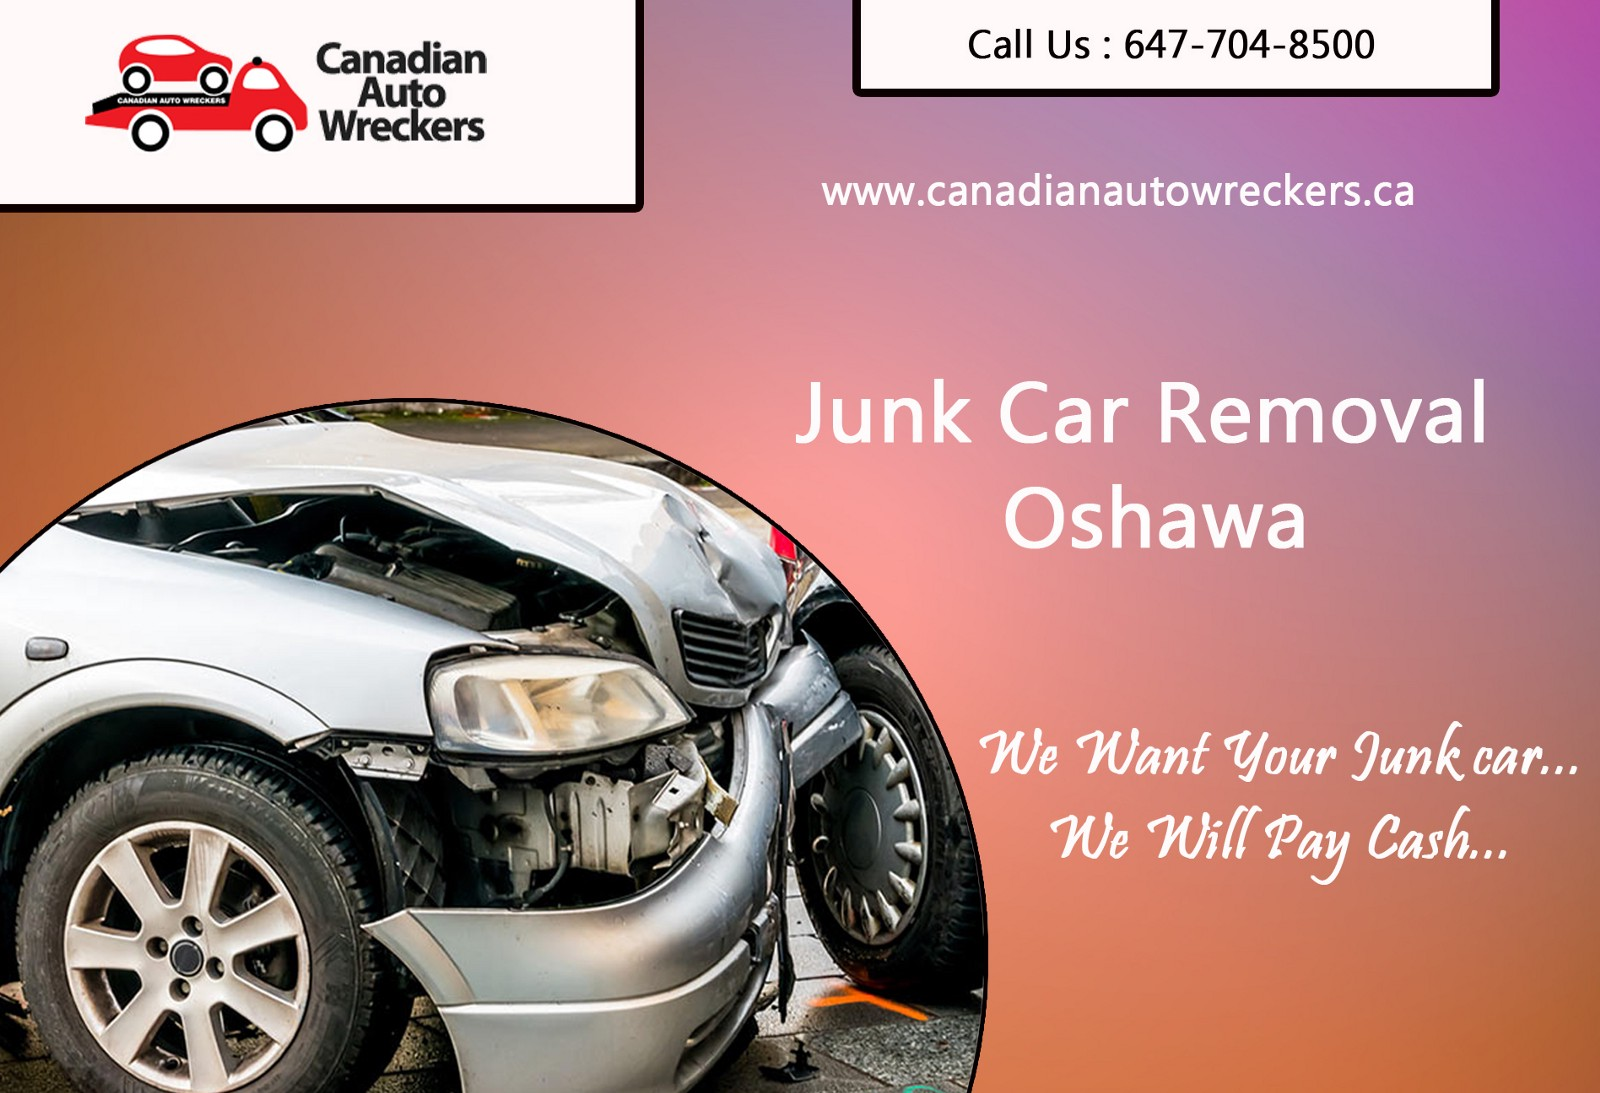 Renew Your City By Removing The Junk Car Junk Car Removal Oshawa